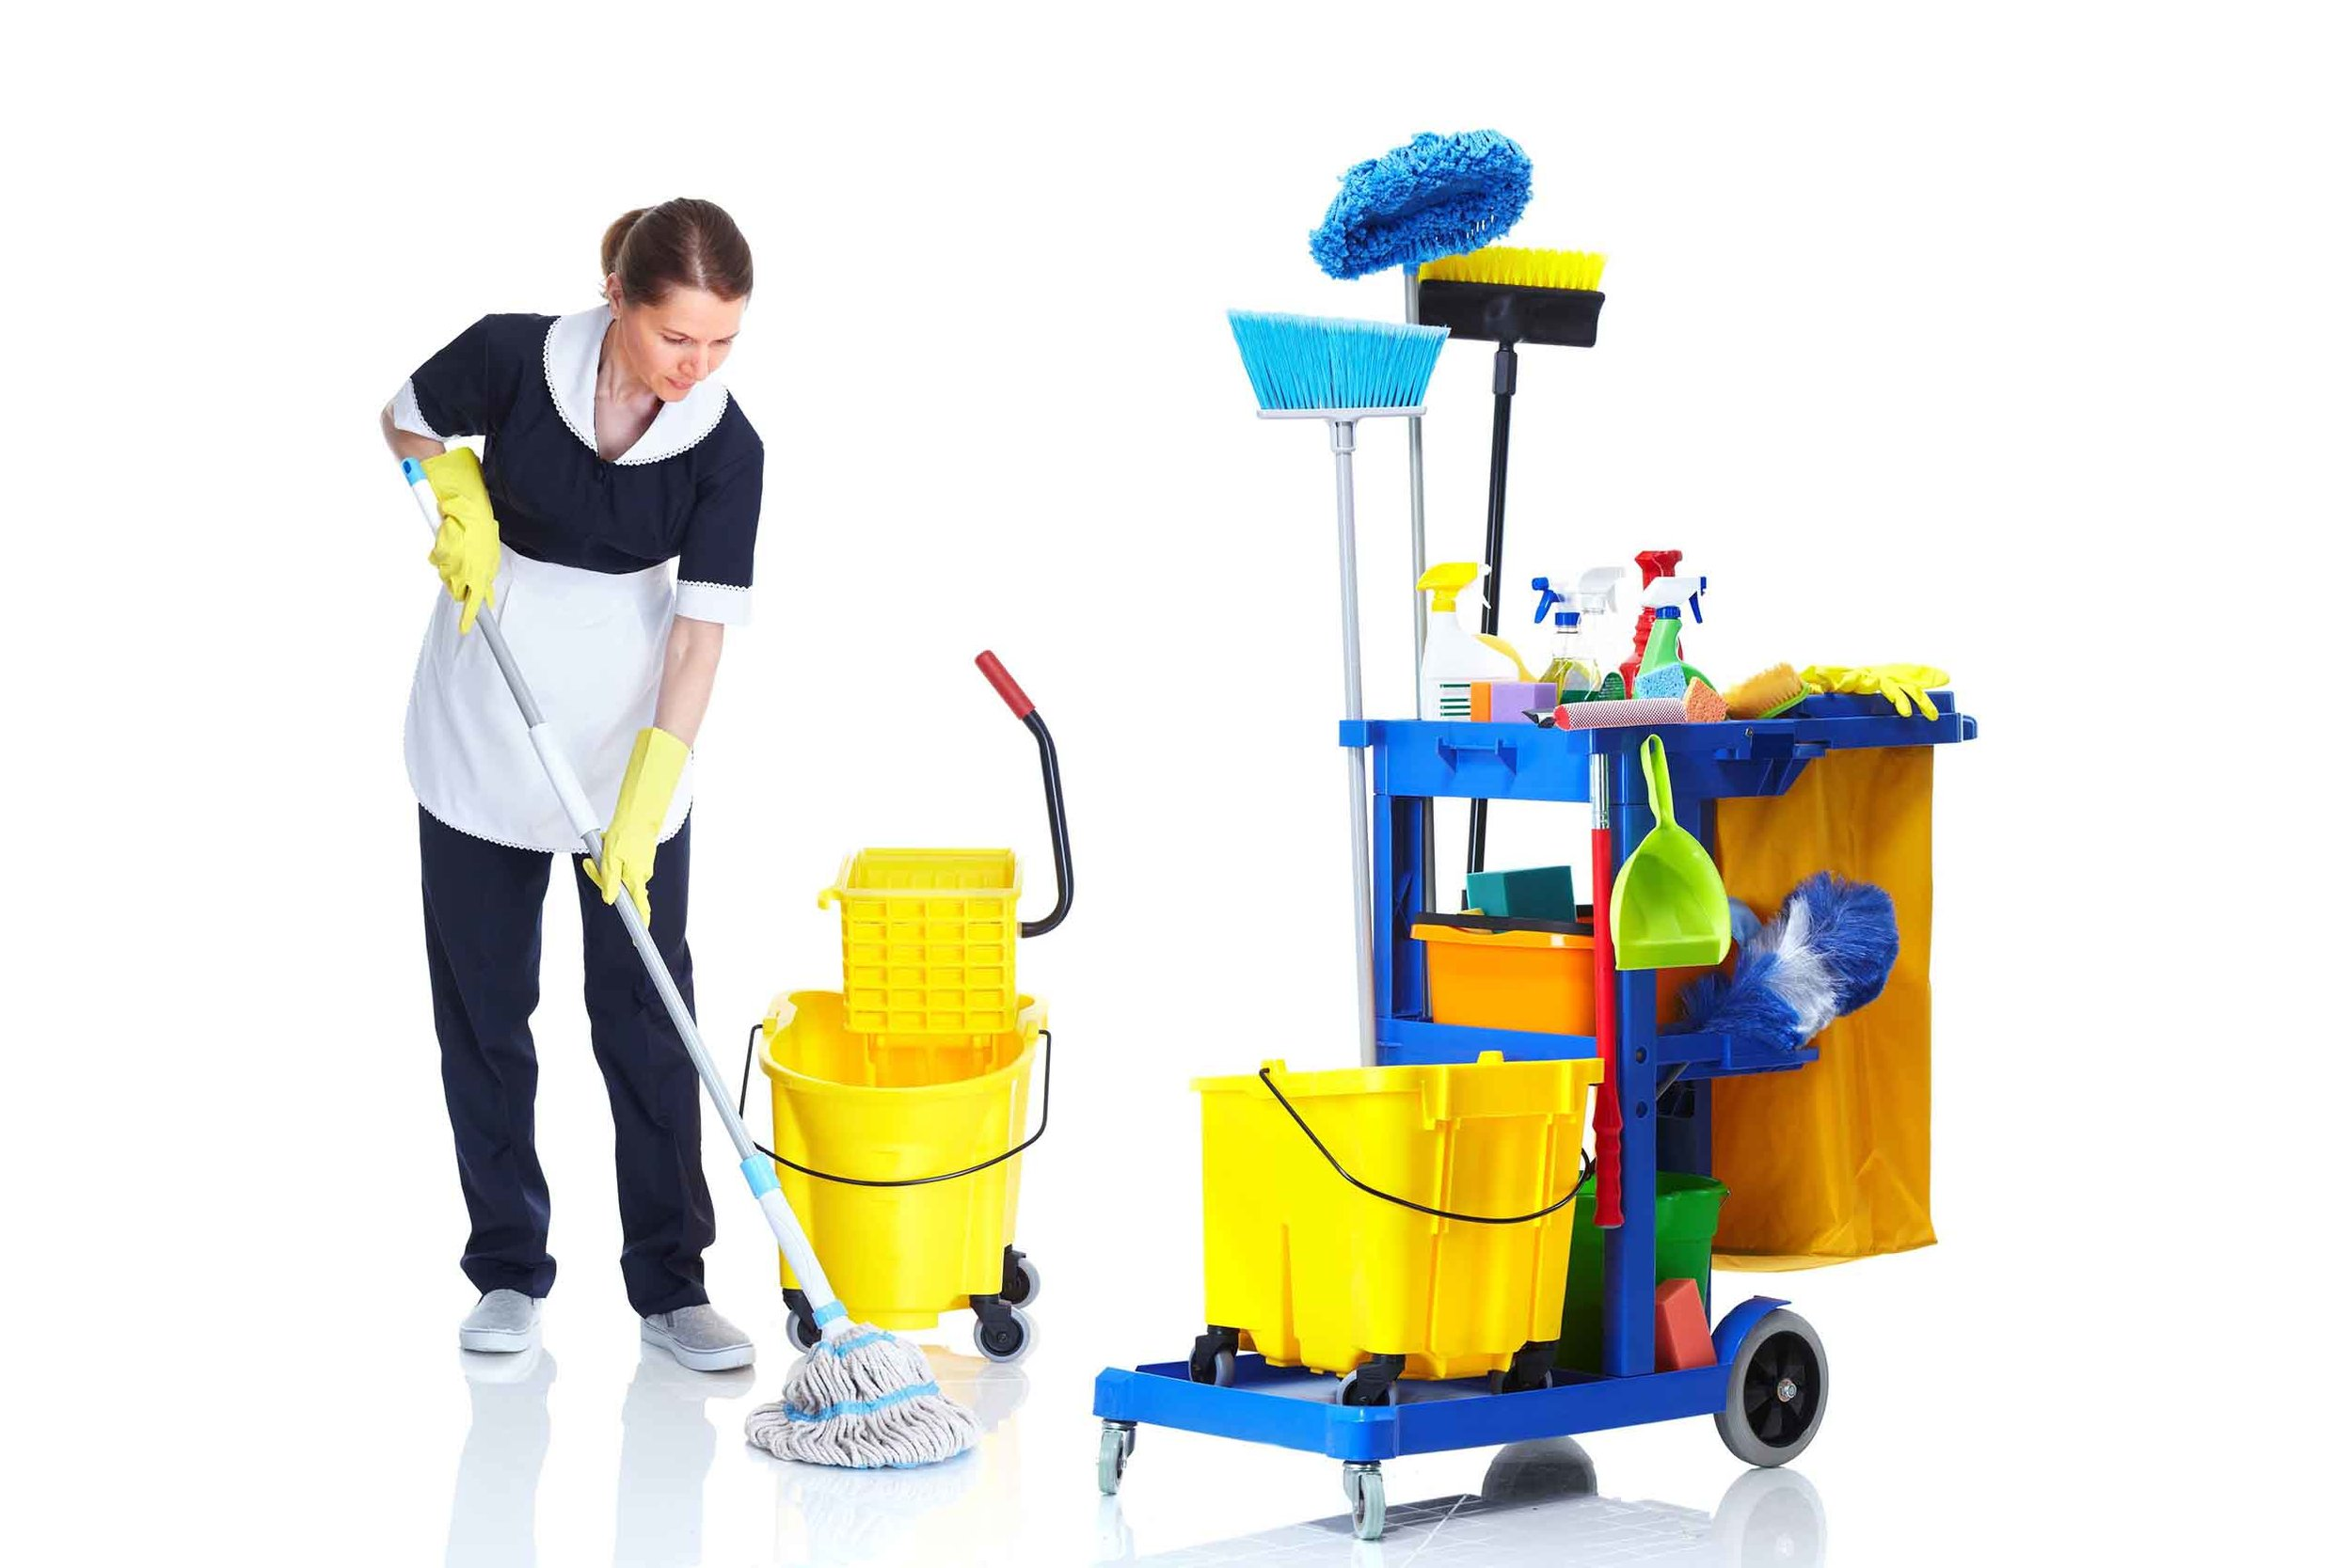 Equipped with special cleaning tools - According to research, most people spend a lot of money in a year just for cleaning supplies alone. Hiring a professional cleaner will not only provide your cleaning needs but also help you cut your expenses short.